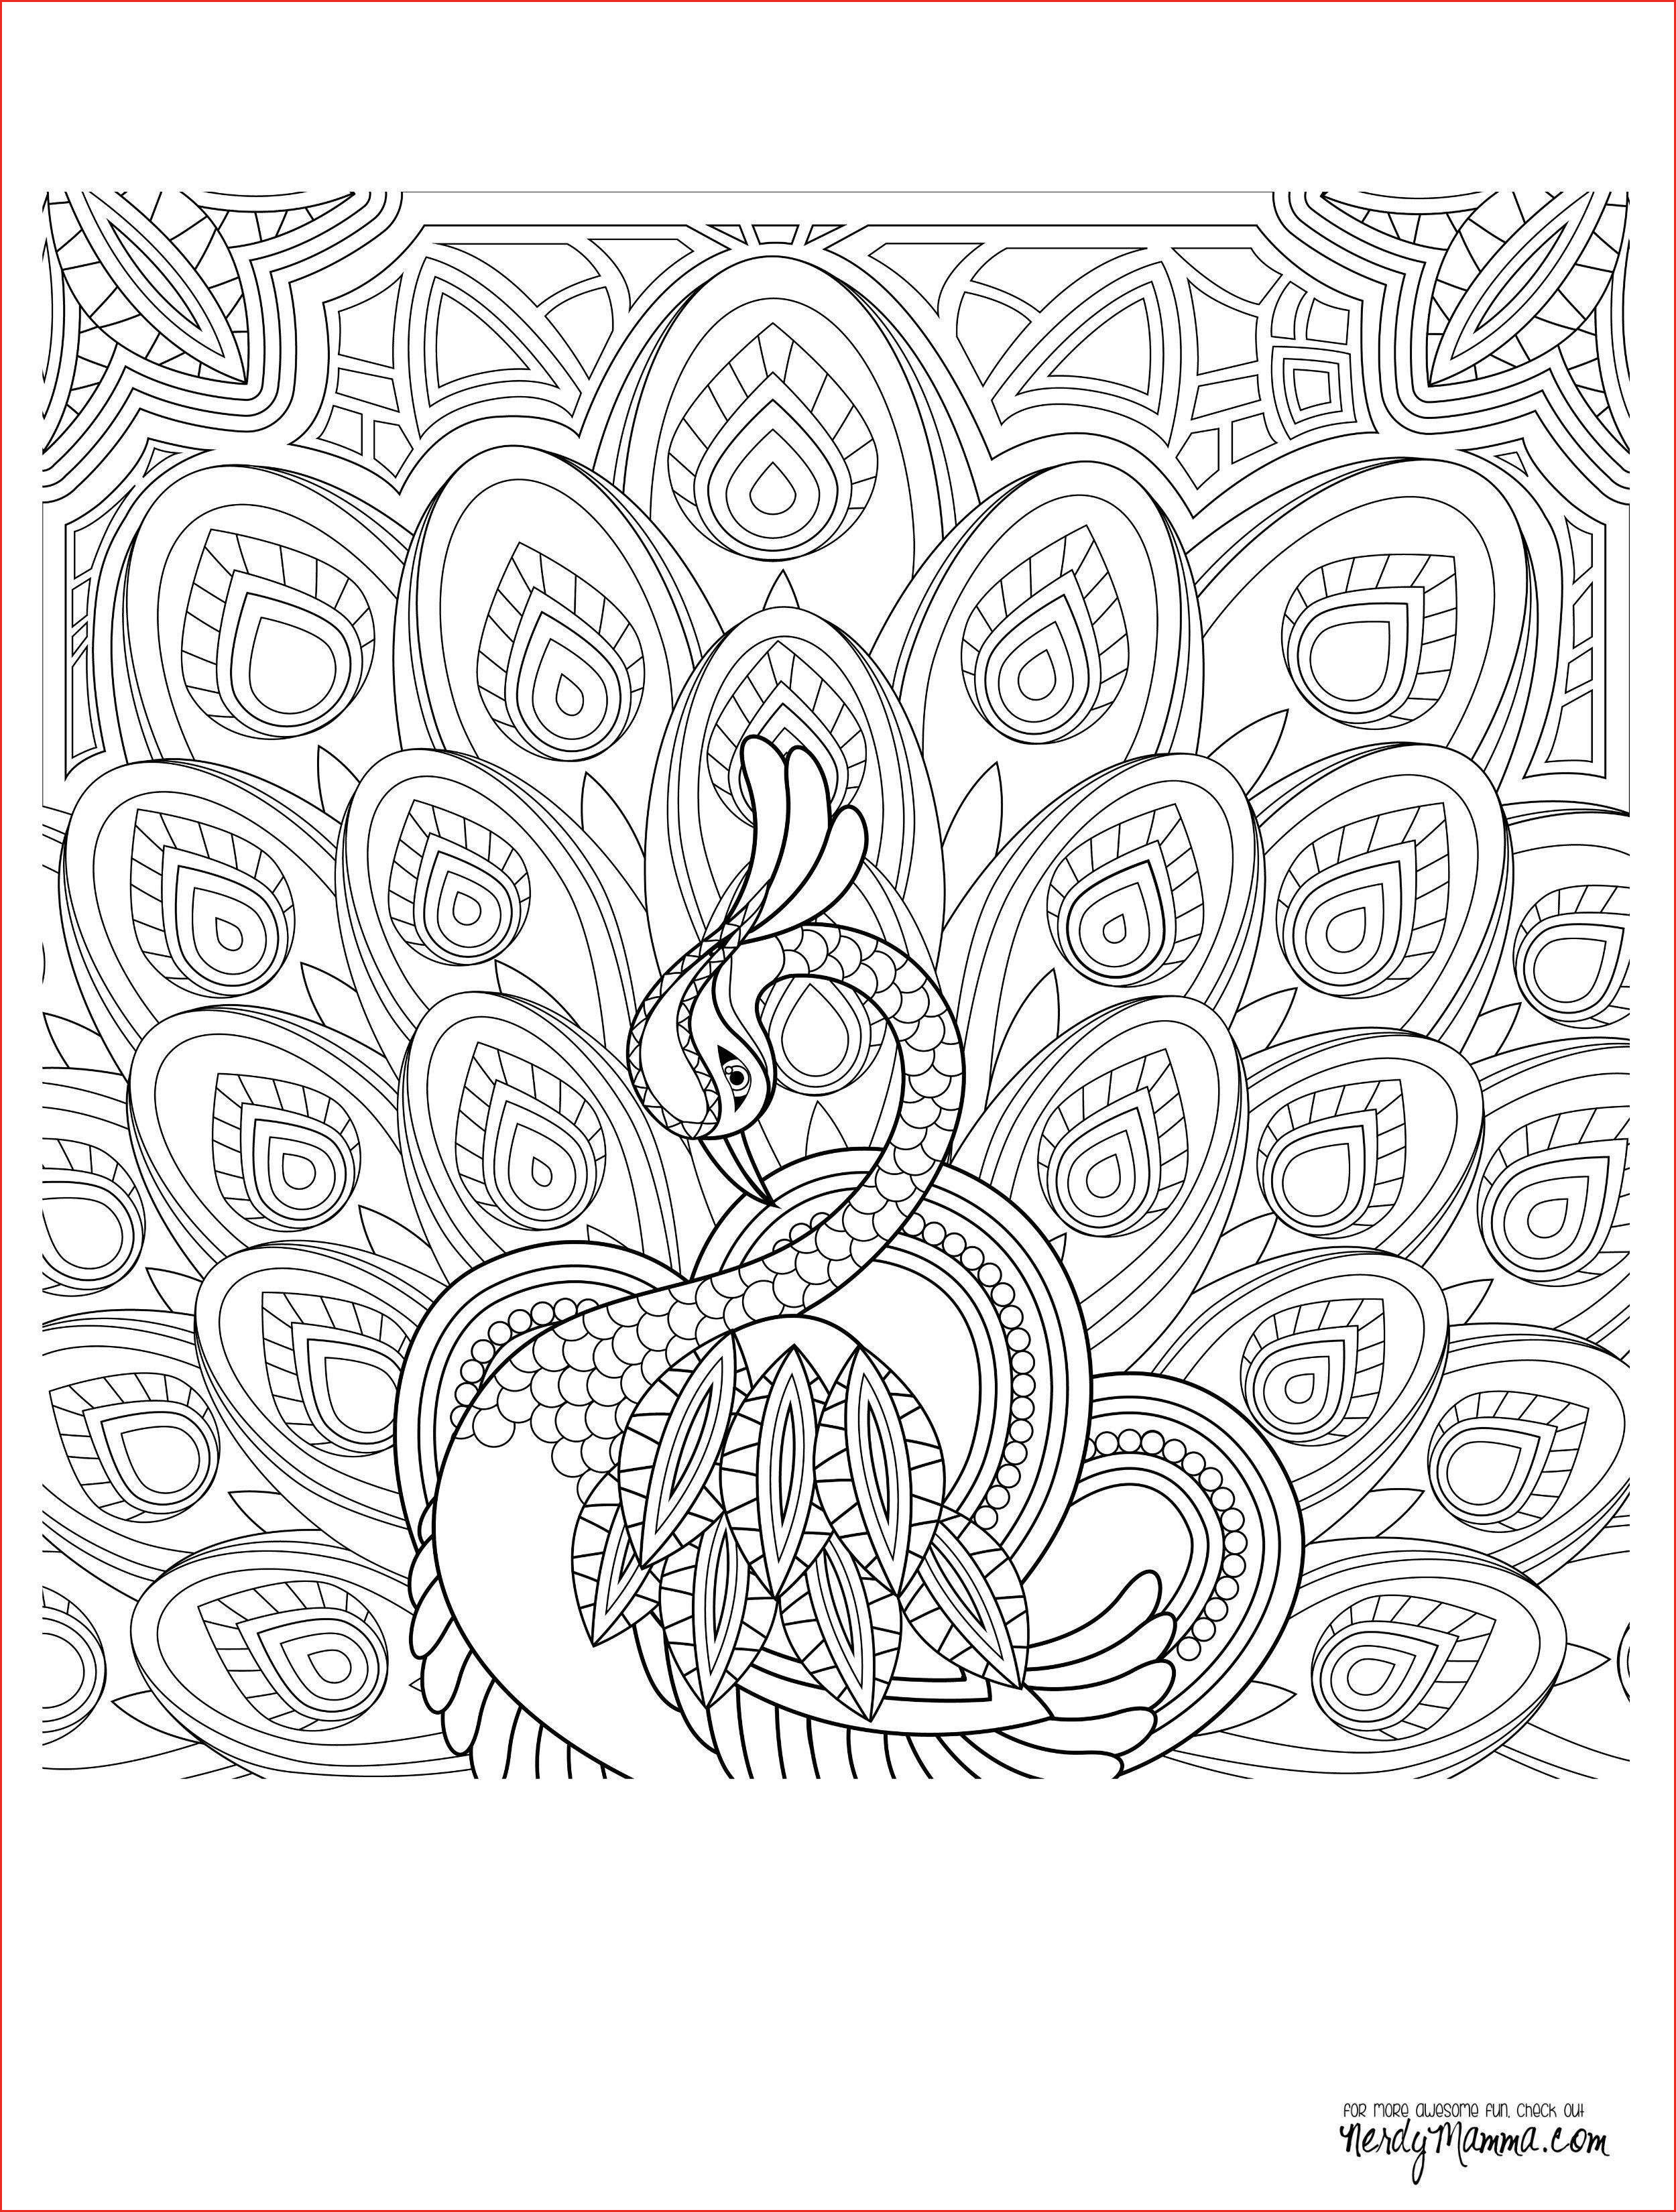 Christmas Stocking Coloring Pages For Adults With How To Draw A 188835 Page